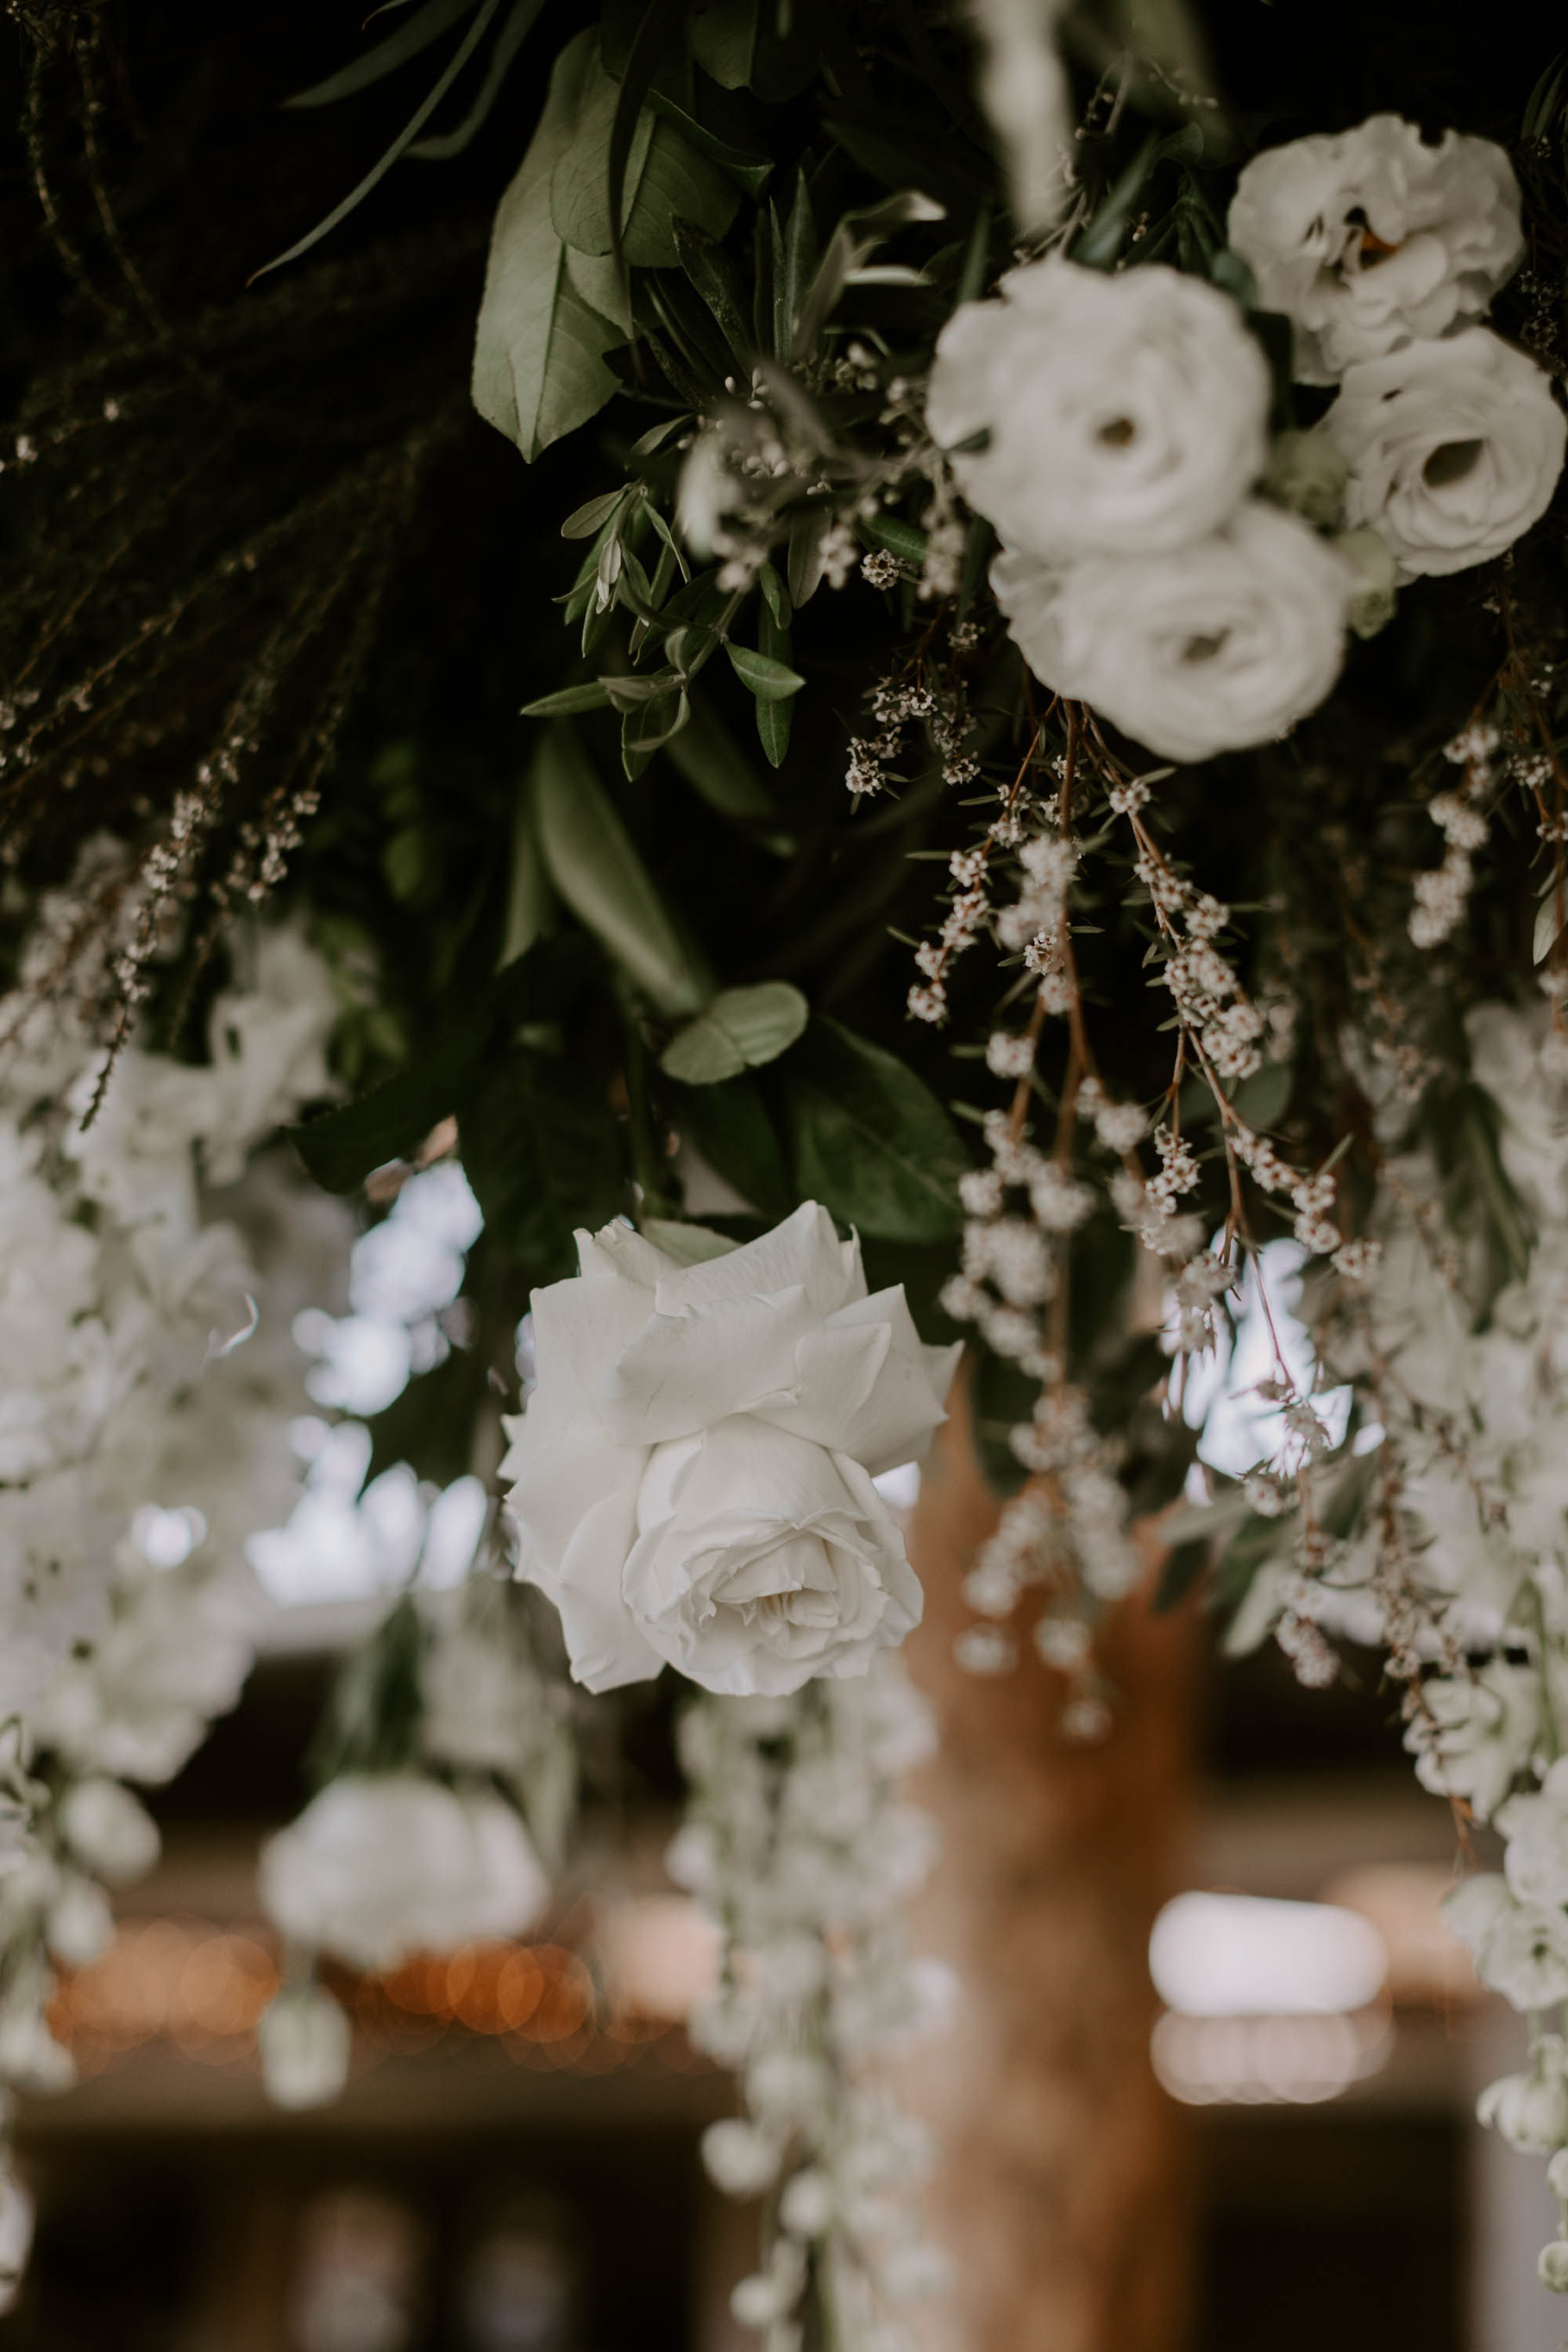 Hanging installation featuring white blooms